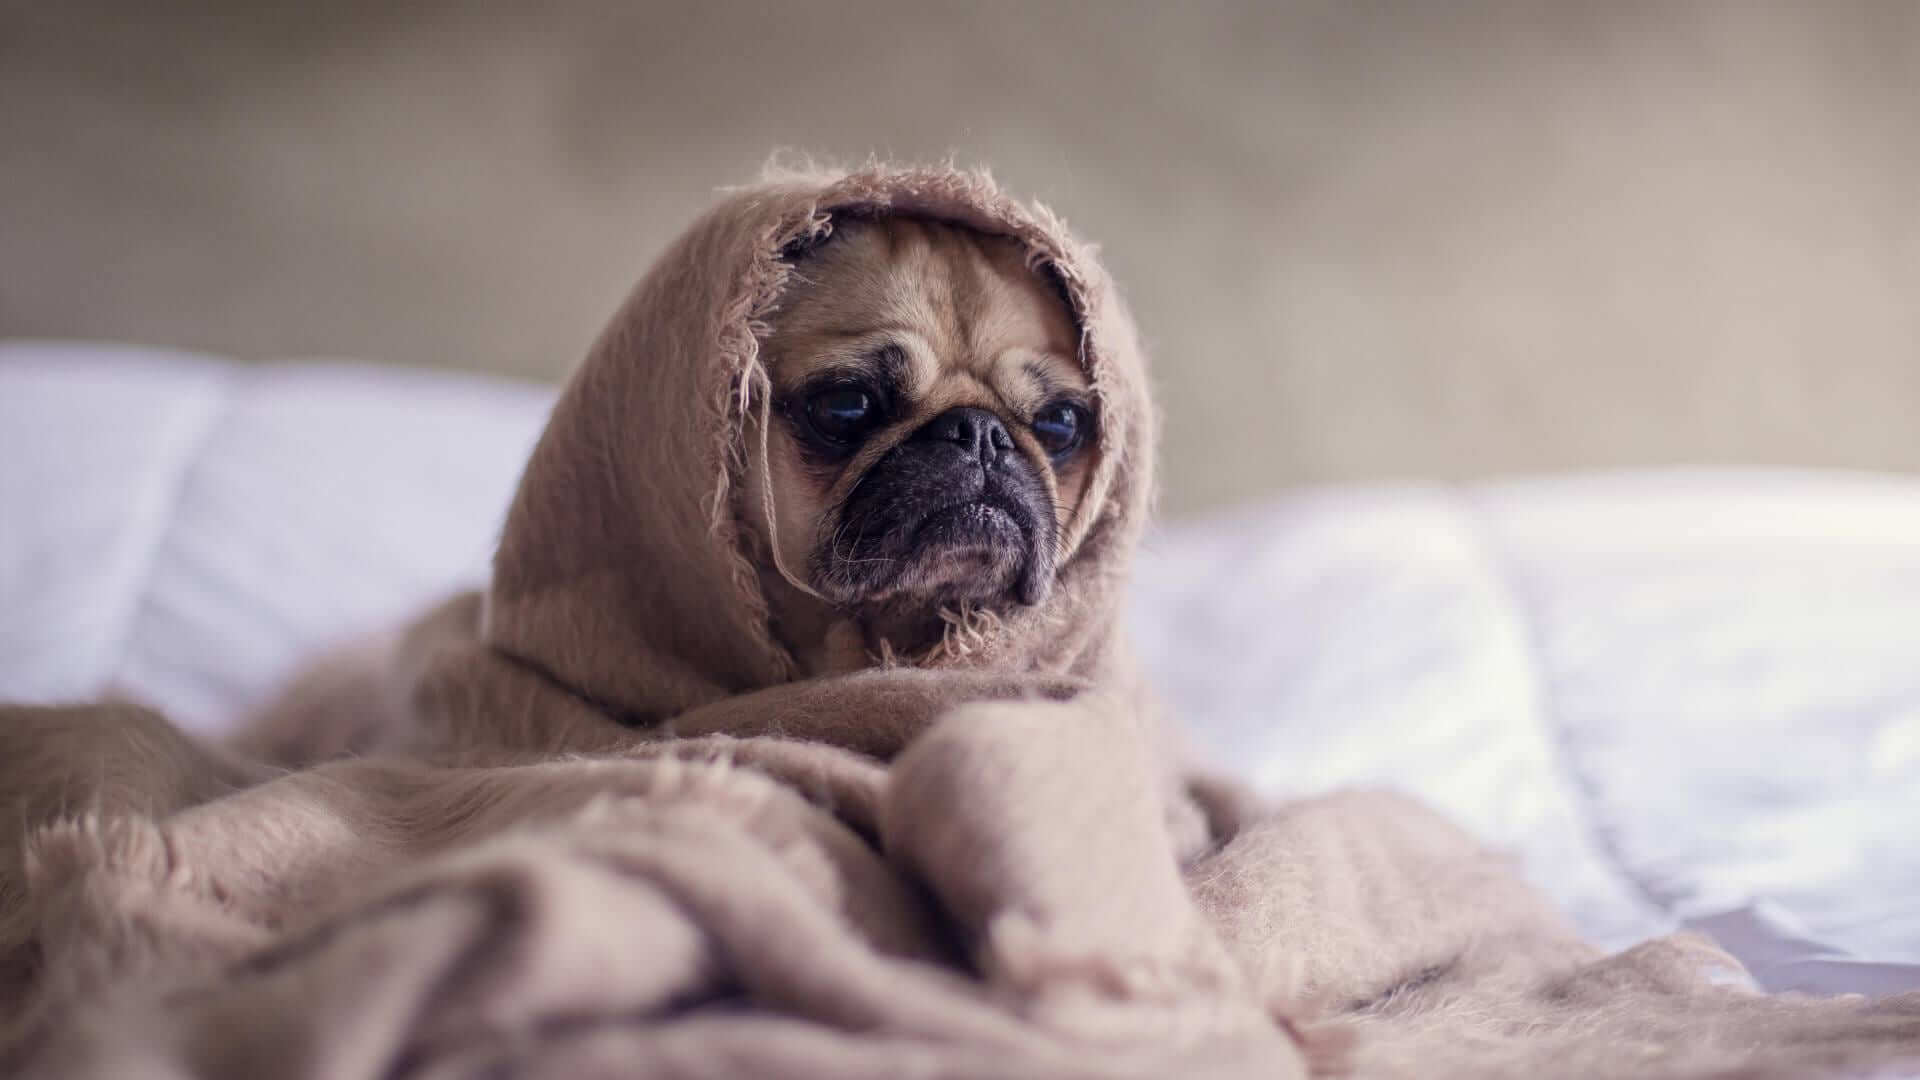 dog wearing a blanket on a bed